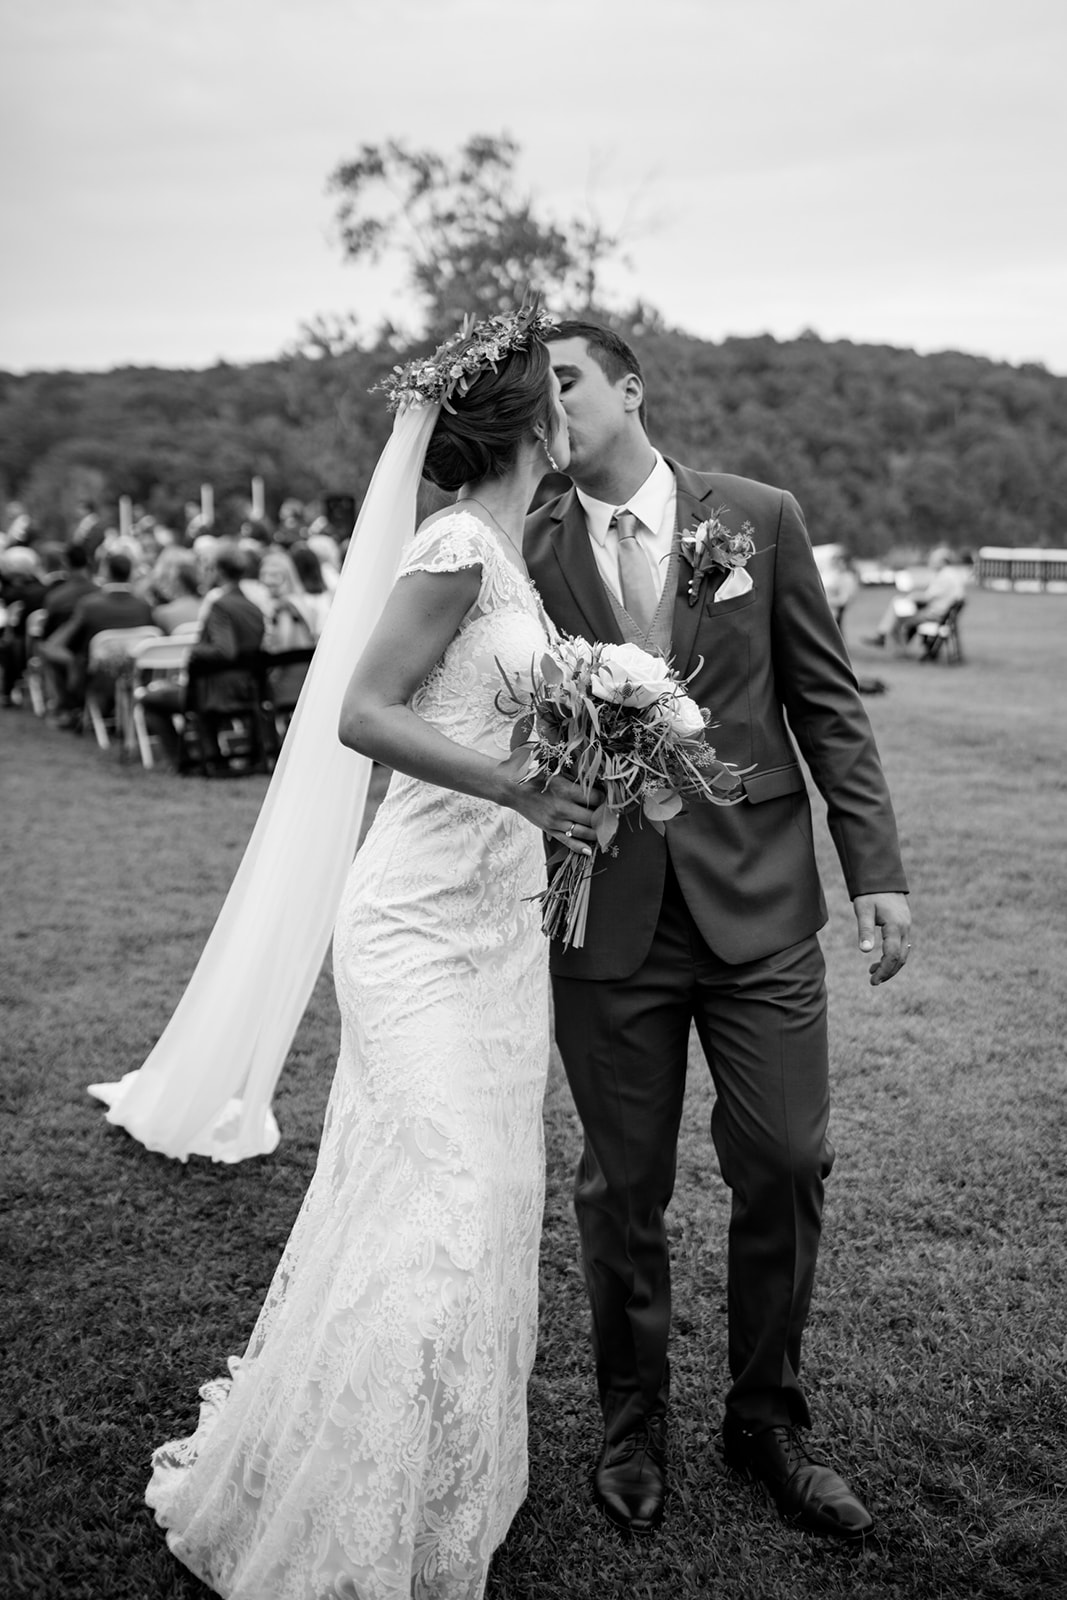 Couples kiss after the ceremony - Floral crown with a veil in a black and white photo - Pearl Weddings & Events